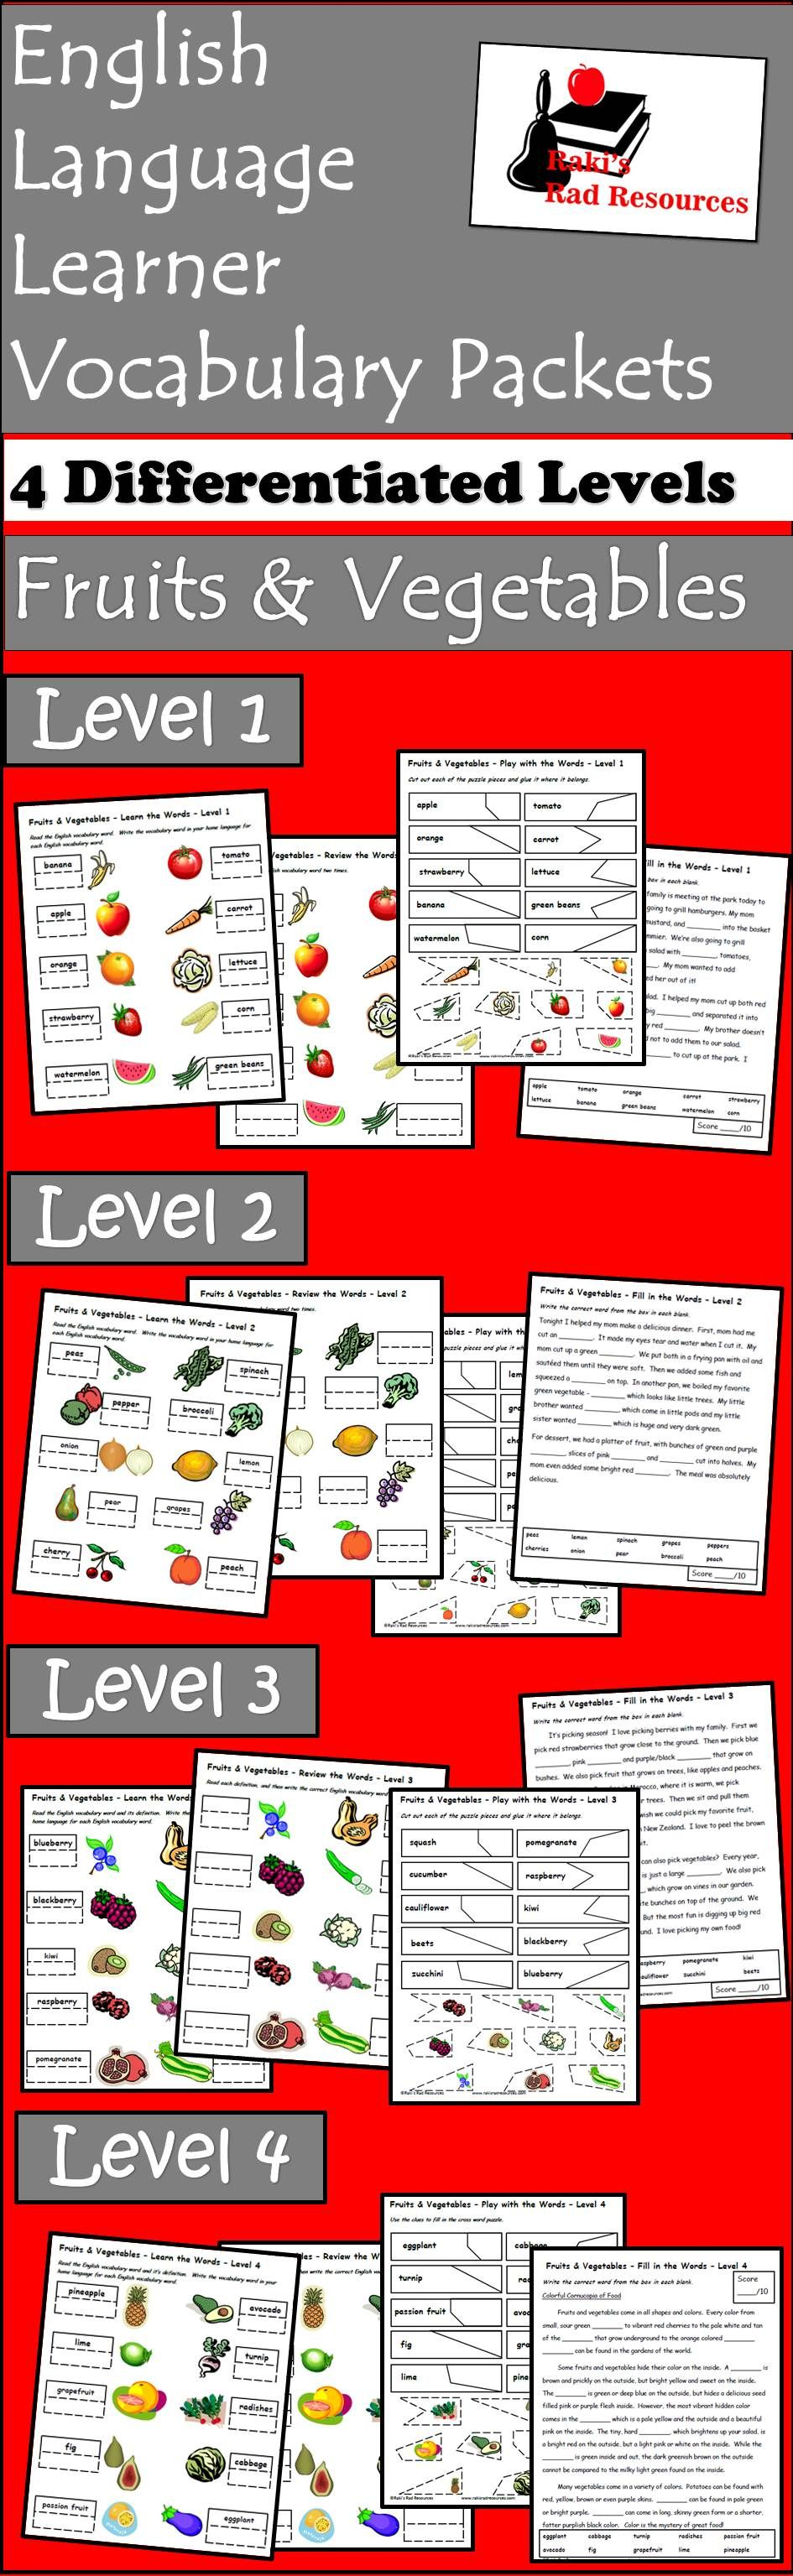 Free ESL Vocabulary Packet - 4 differentiated levels to teach students vocabulary related to fruits and vegetables.